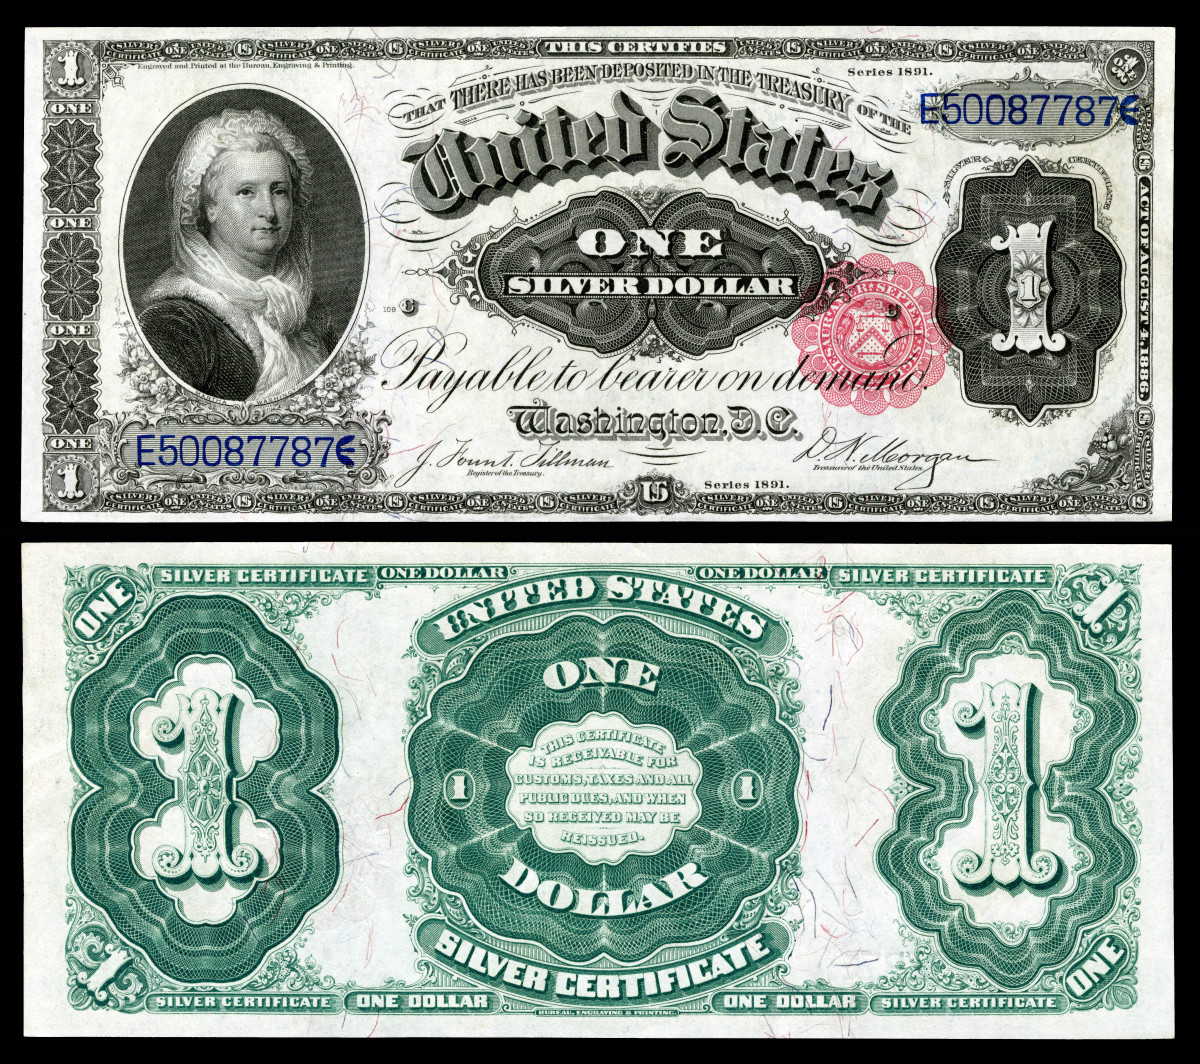 Martha Washington U.S. Paper Currency Photo